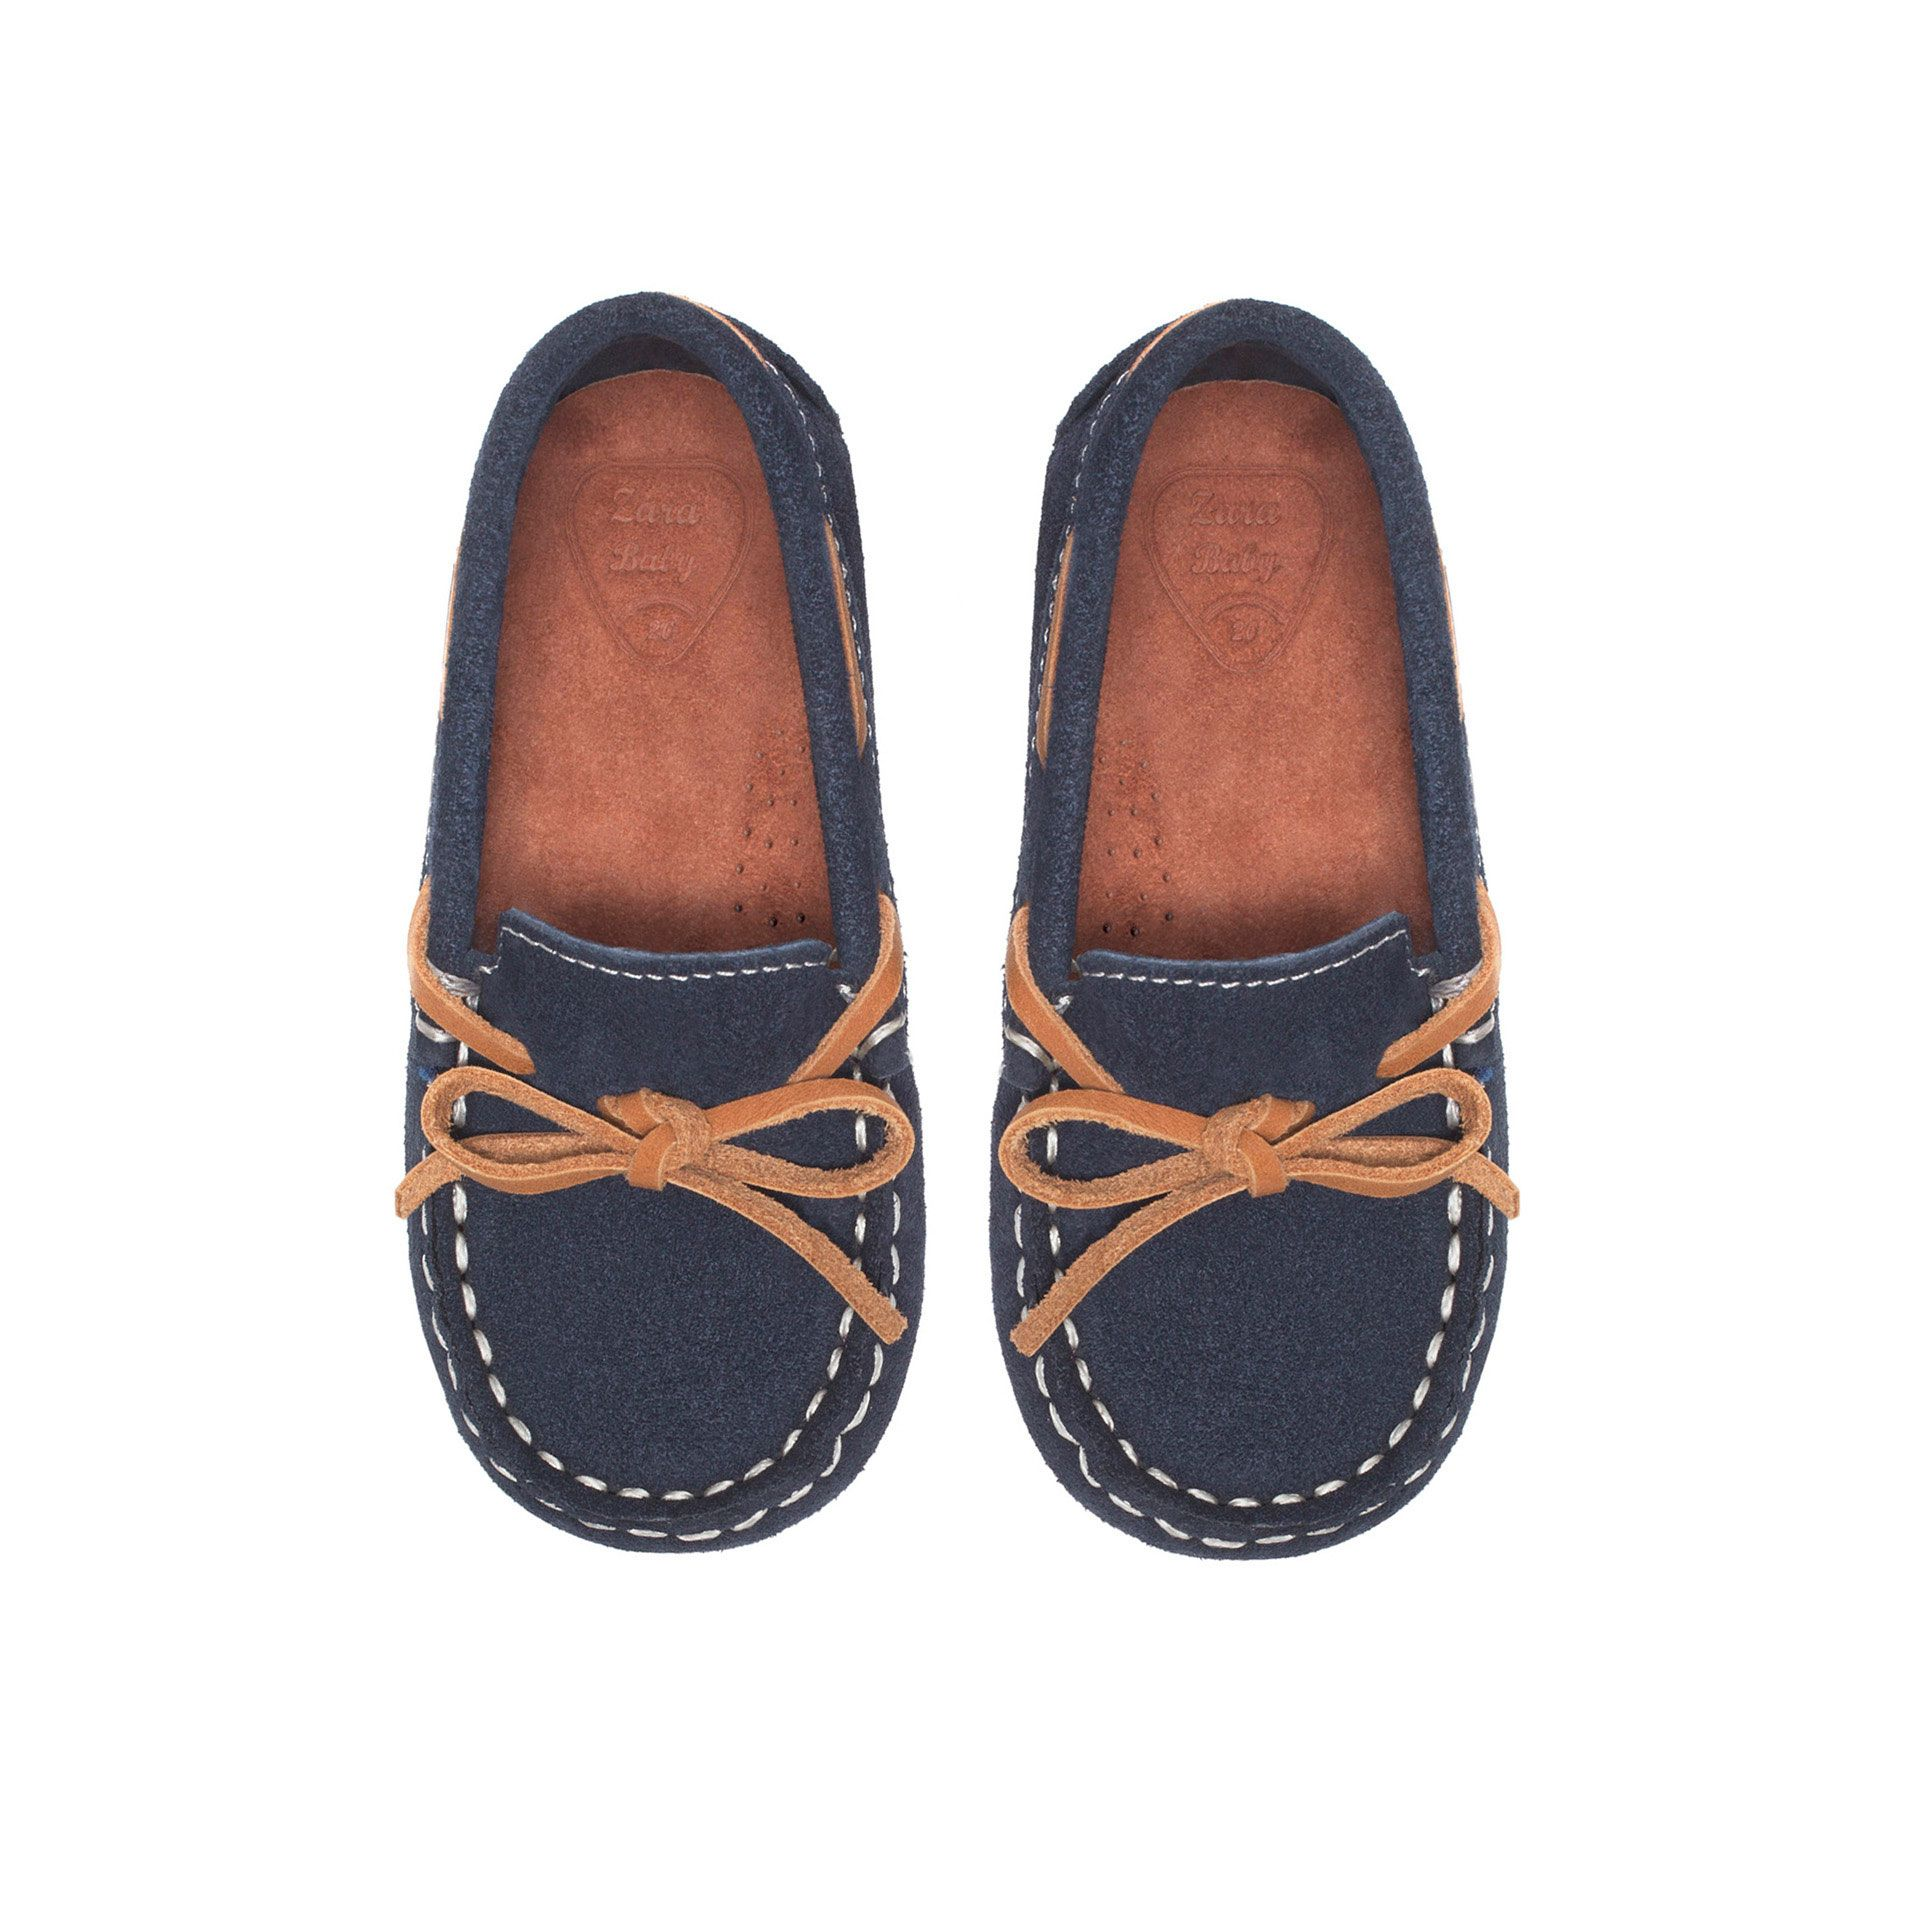 Casual leather moccasin Shoes Baby boy Kids ZARA United